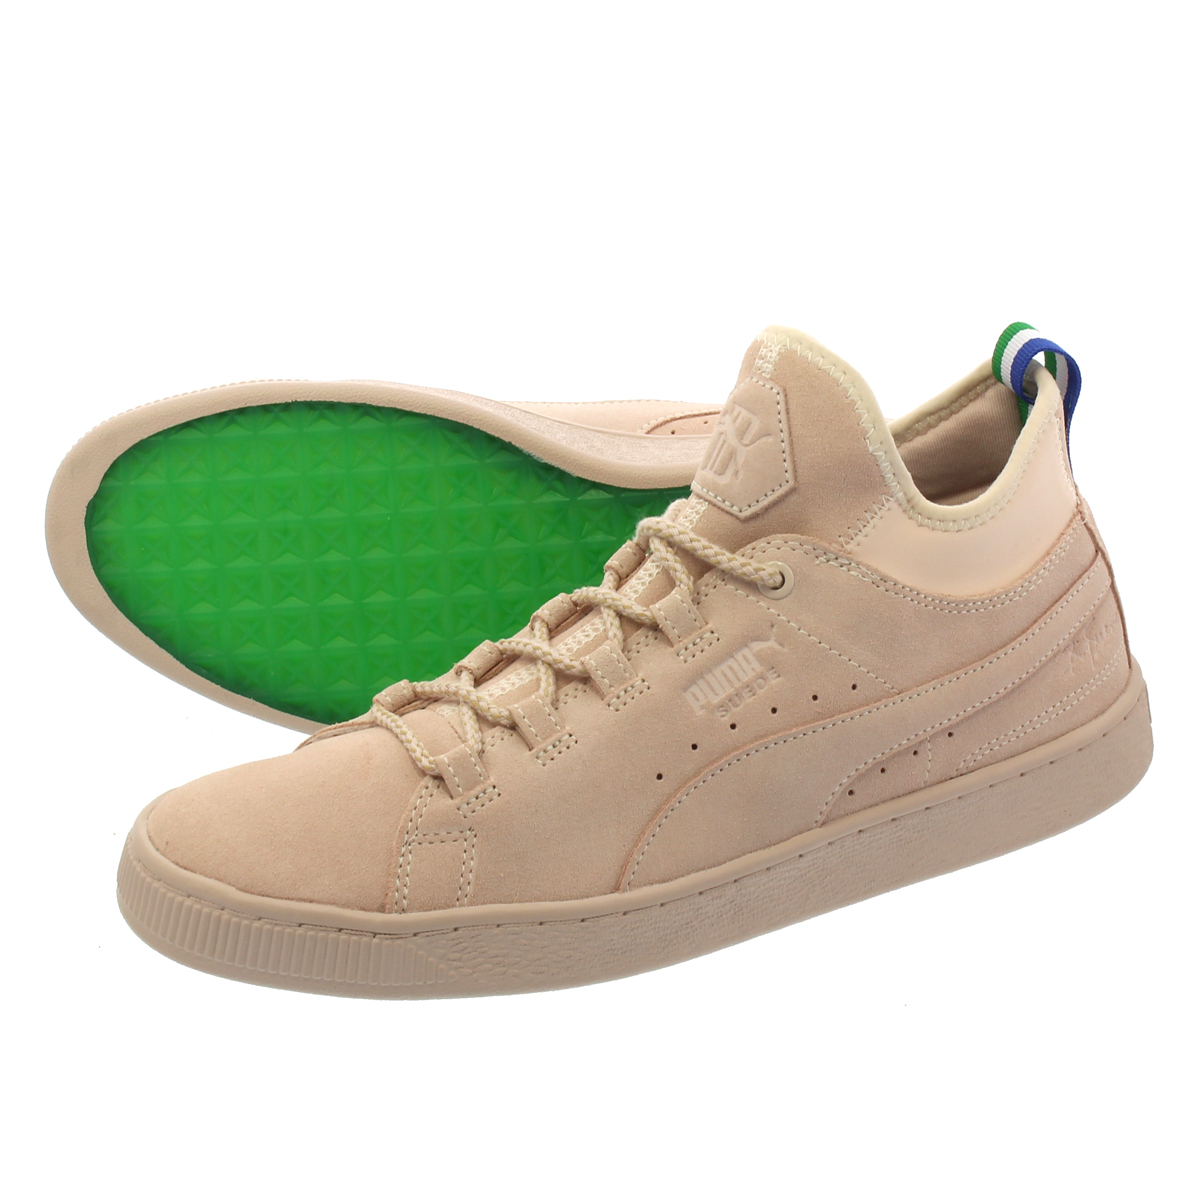 uk availability 33f70 3c020 PUMA SUEDE MID BIG SEAN Puma suede cloth mid big Sean SHELL/SHELL 366,252-01